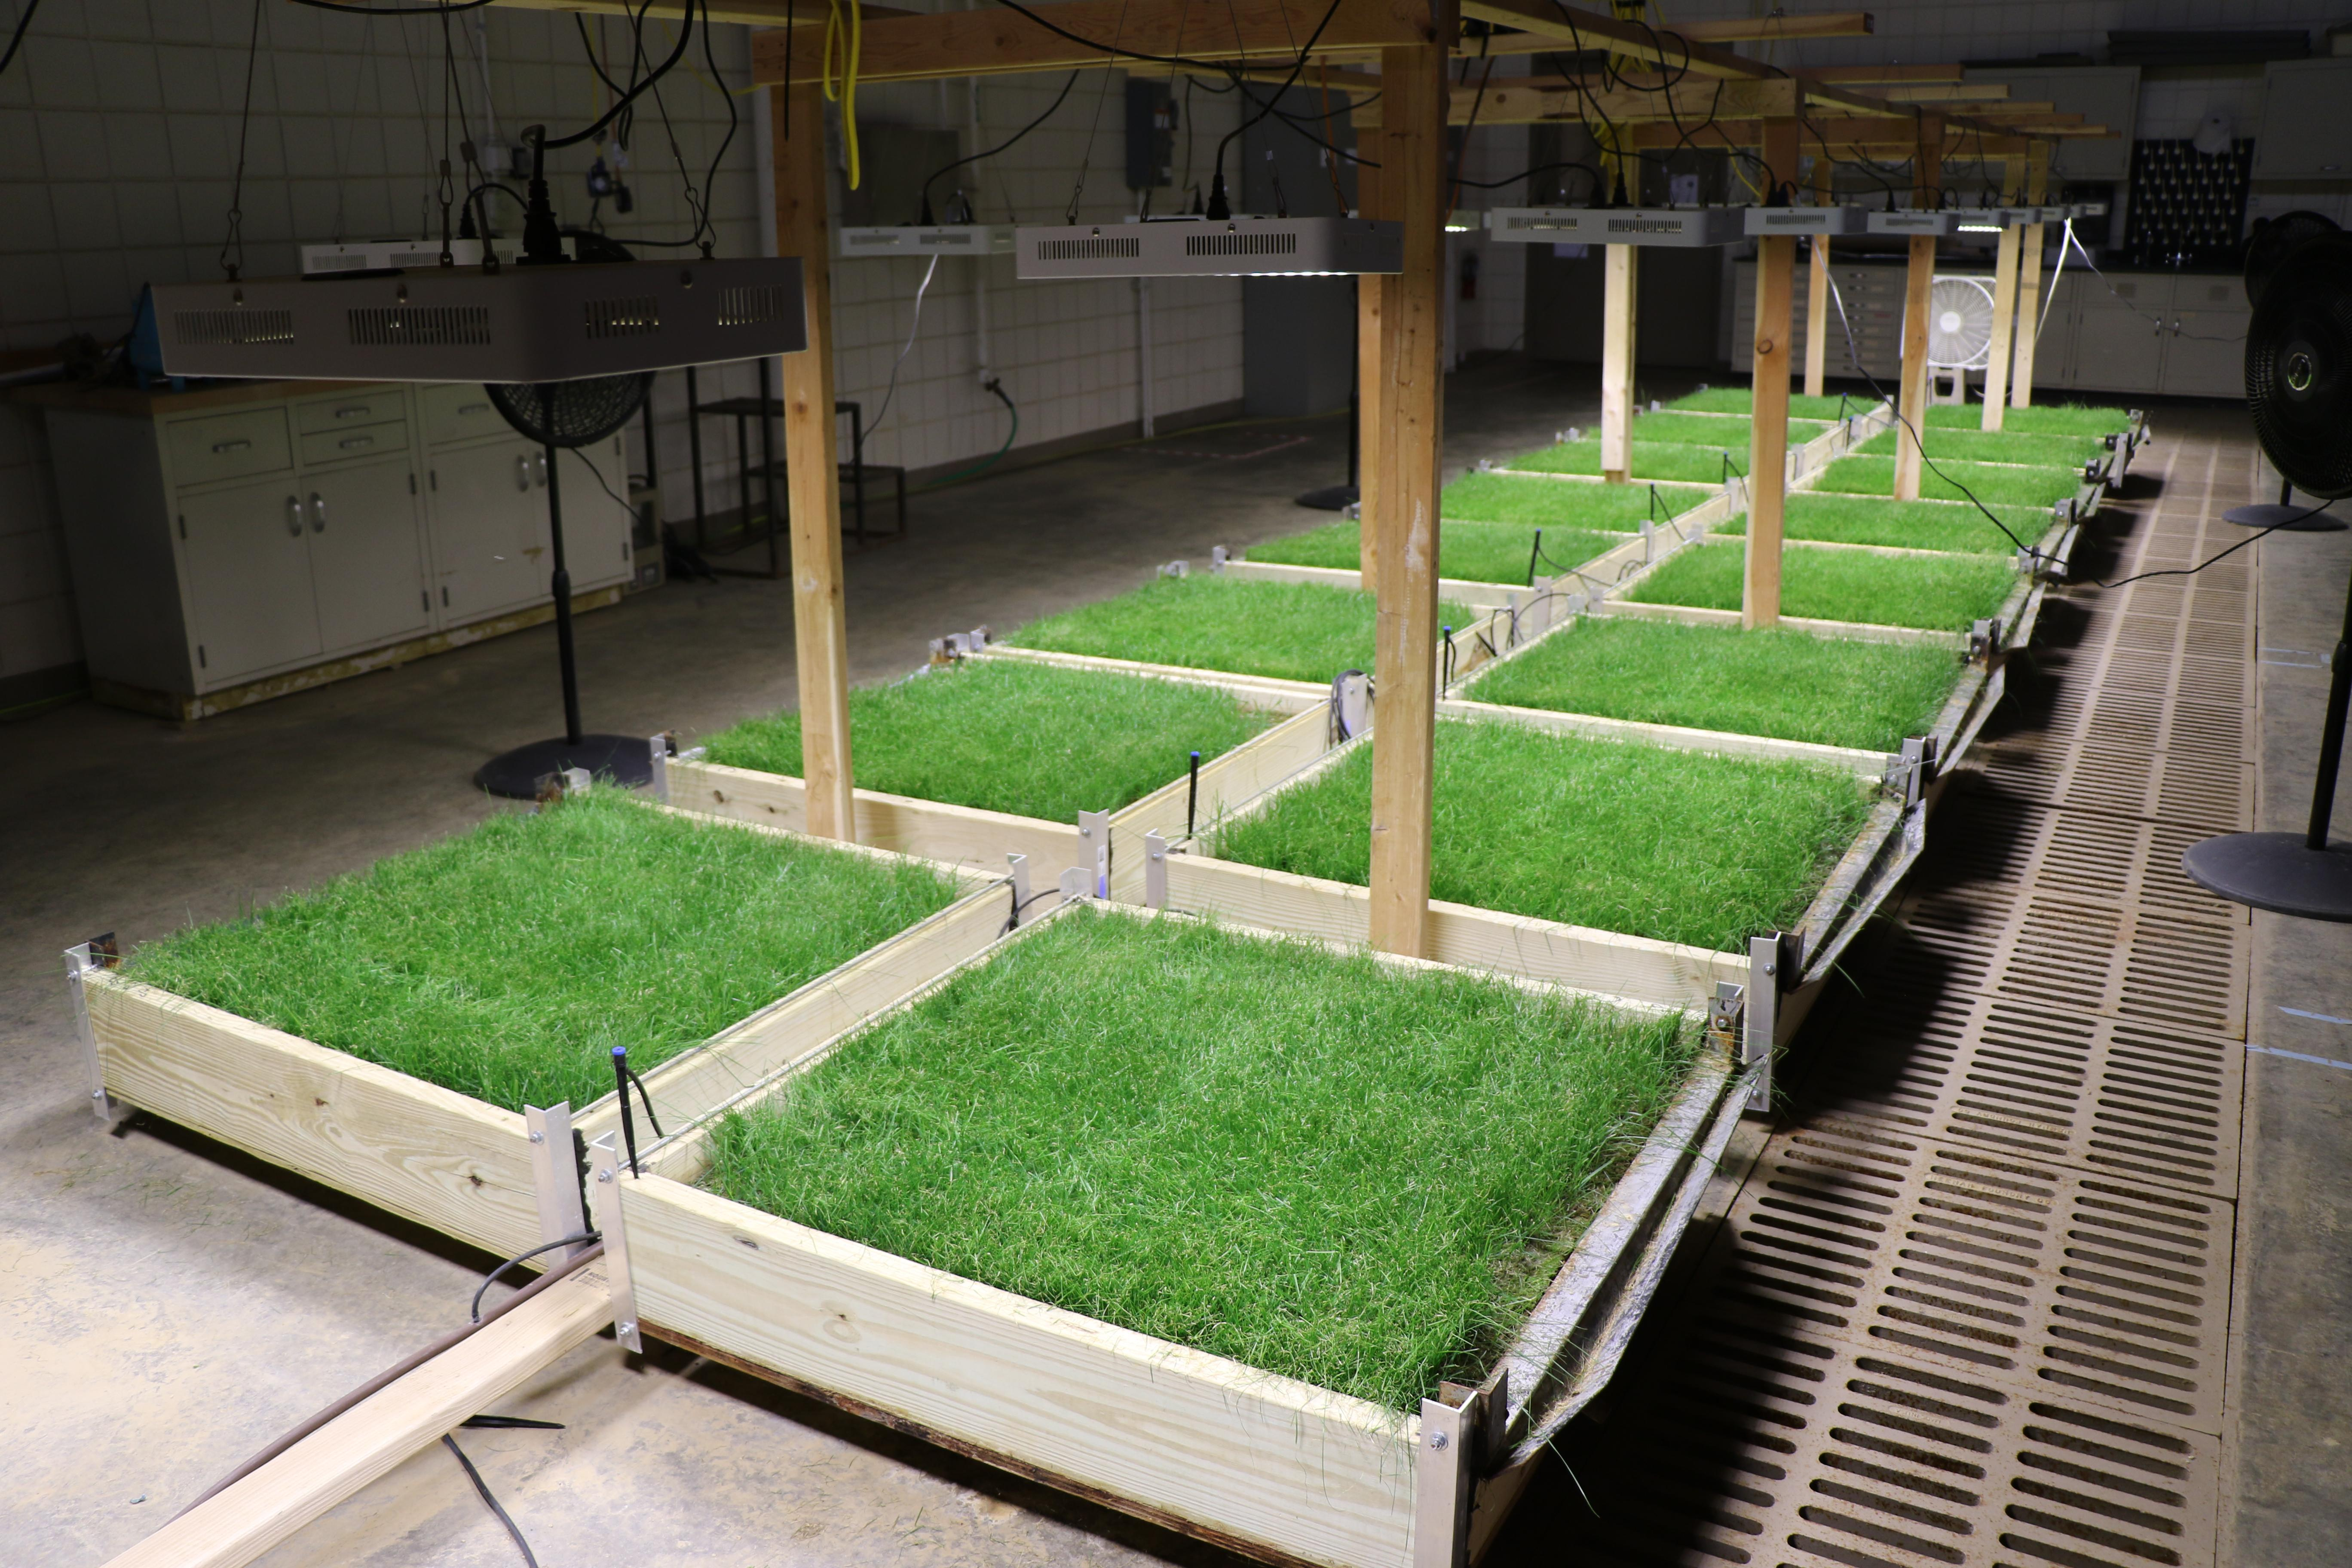 Image shows grass plots used in runoff experiments